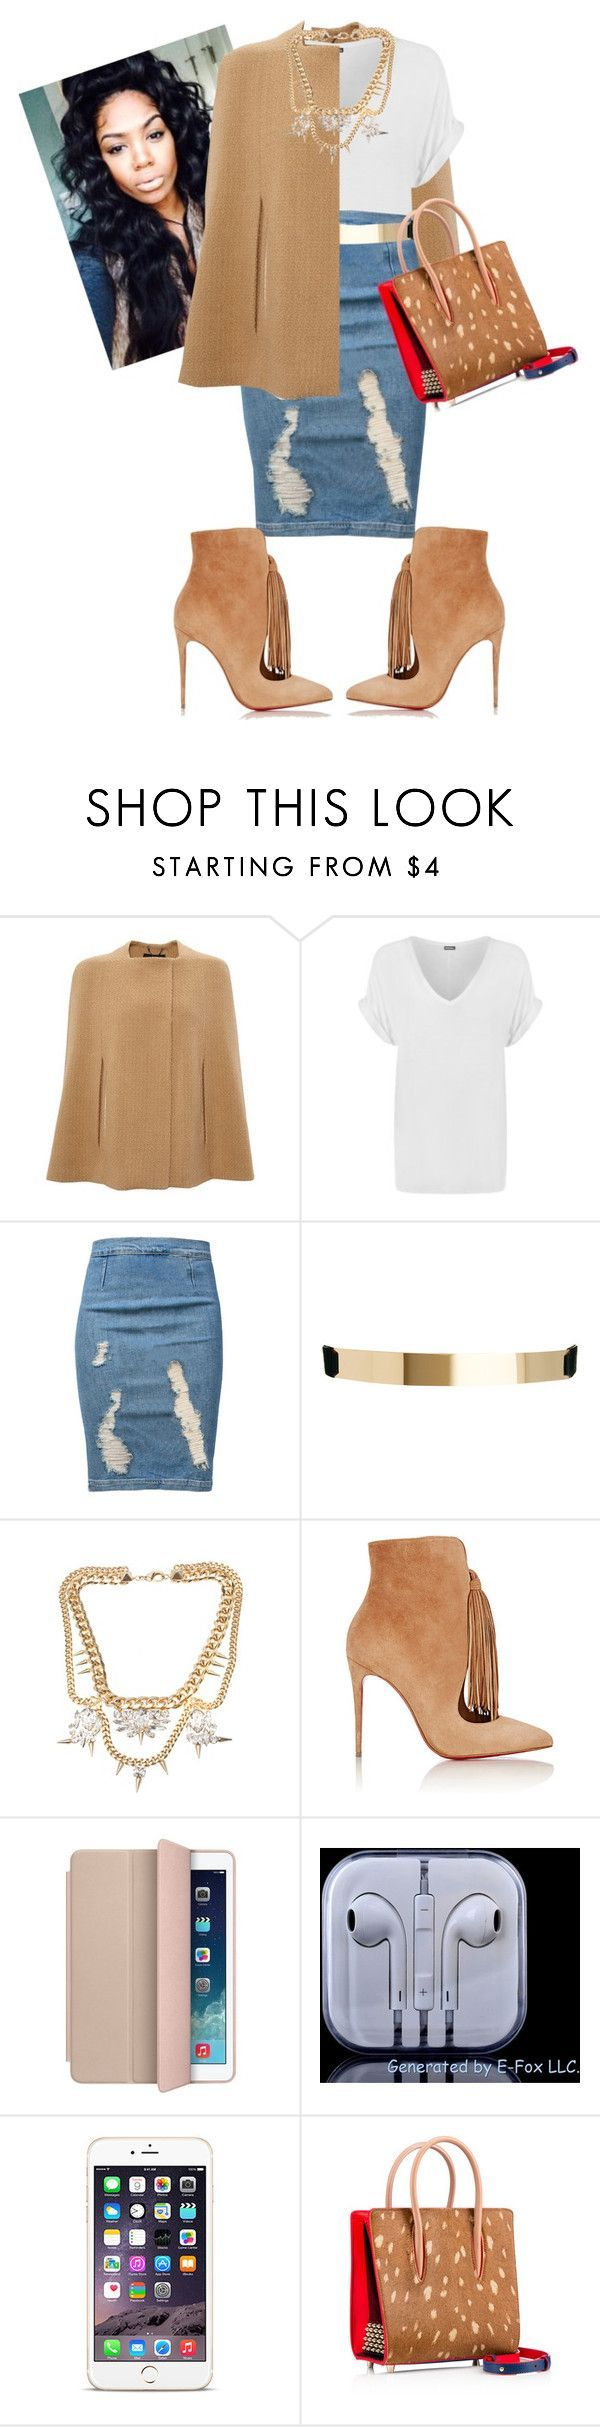 """""""State Rehersal!"""" by cogic-fashion ❤ liked on Polyvore featuring Derek Lam, WearAll, Frame Denim, ASOS, Fallon, Christian Louboutin and Apple"""